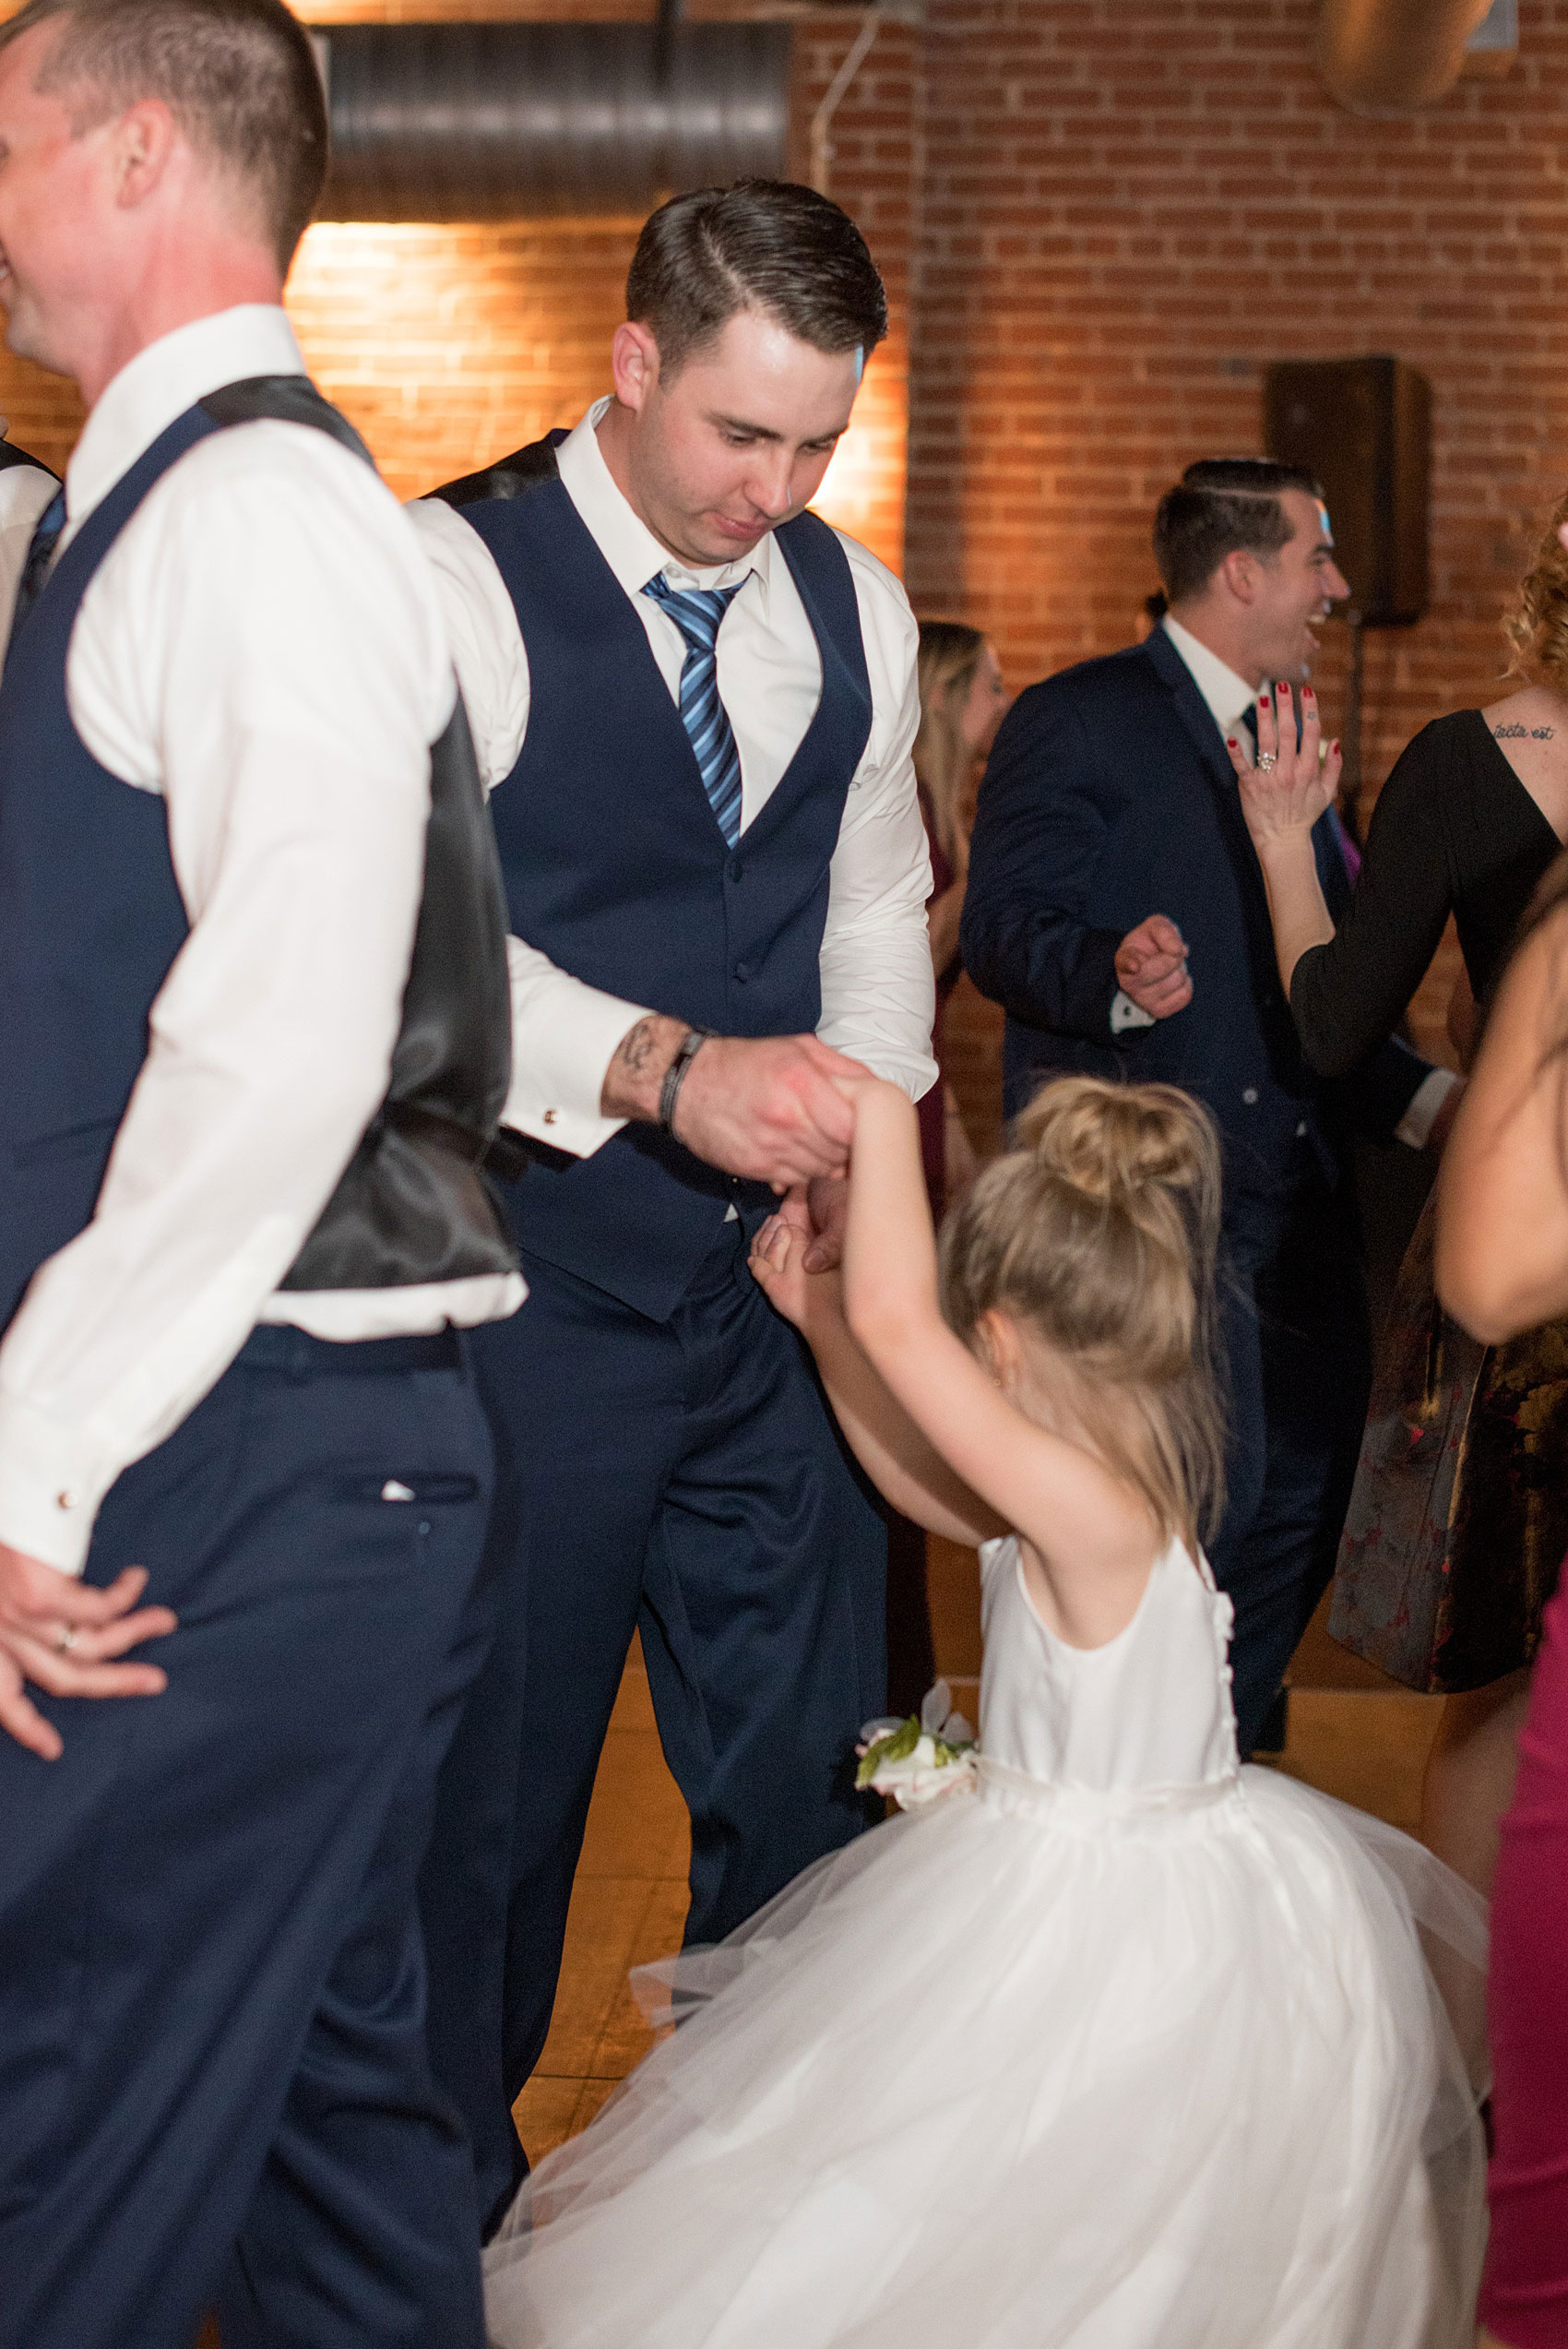 Durham wedding photos at The Cookery by Mikkel Paige Photography in North Carolina. The groom danced with his daughter, the flower girl, during the winter reception.